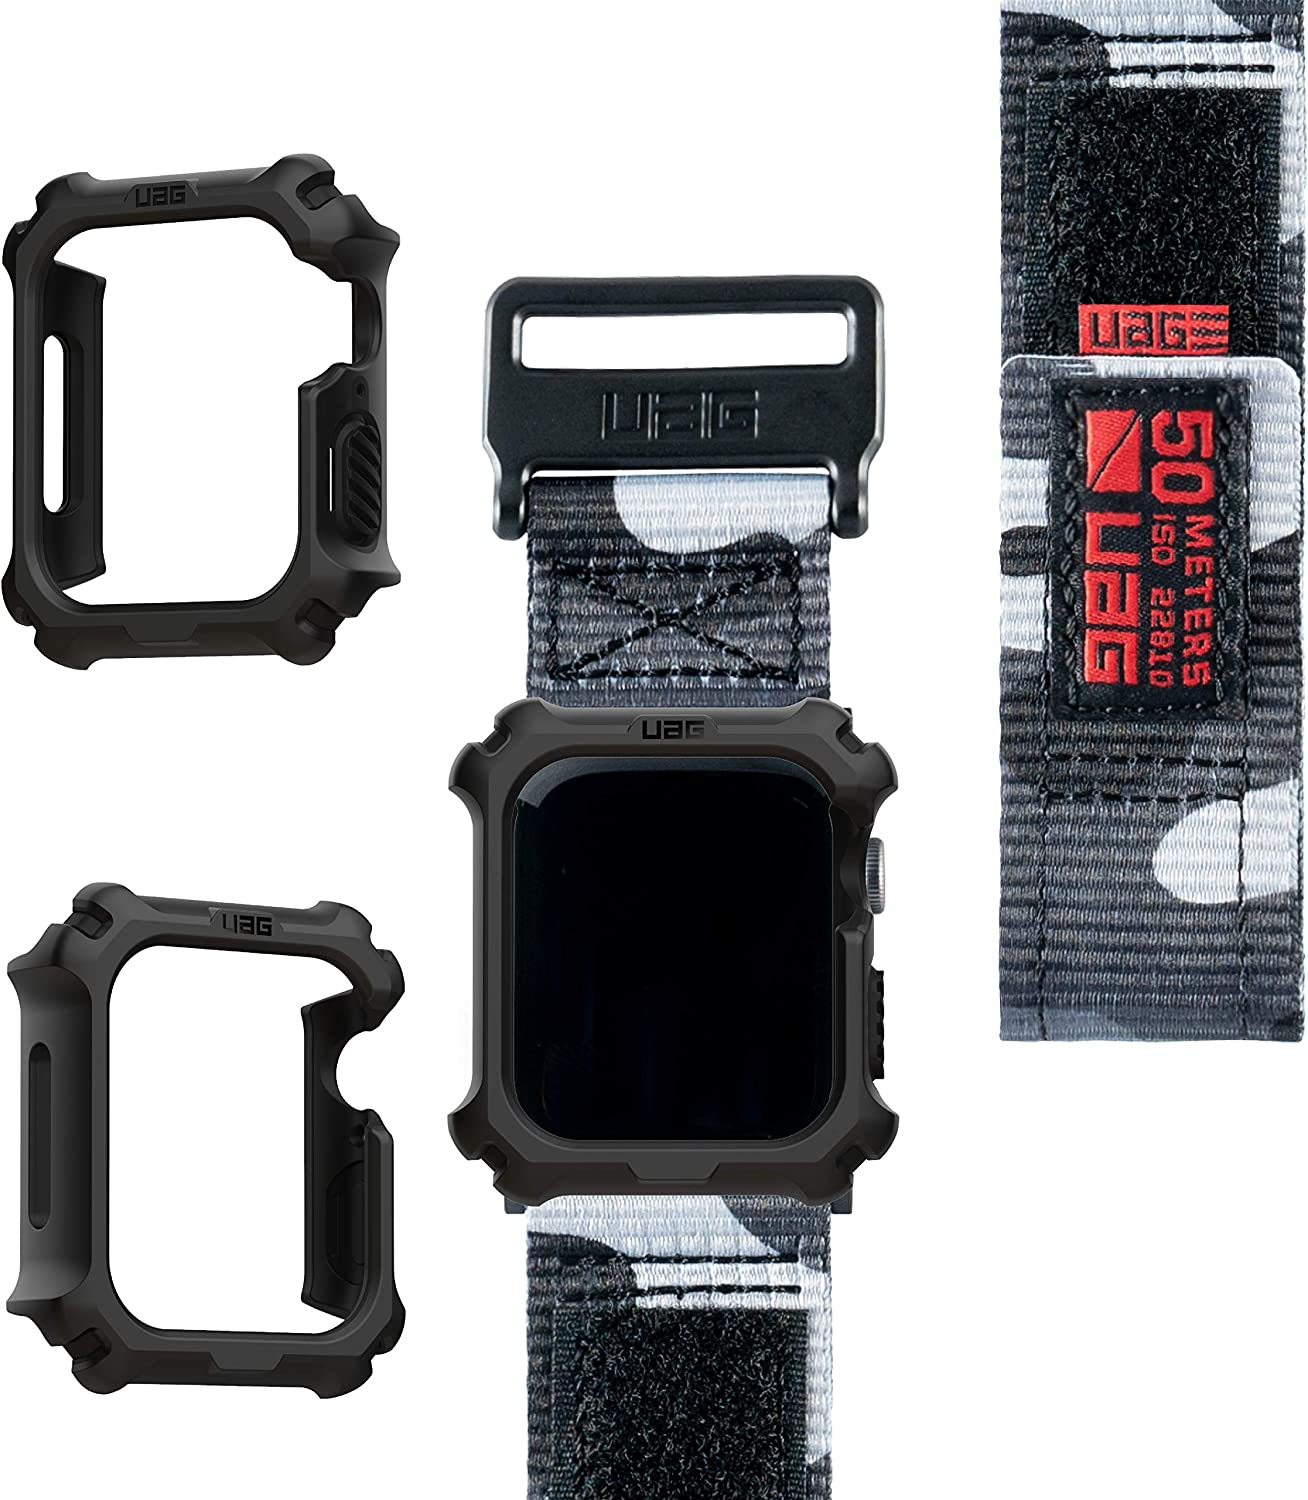 UAG Apple Watch Band 44mm 42mm, iWatch Series 6/5/4/Watch SE Replacement Strap, Active Midnight Camo + Apple Watch Case 44mm, iWatch Series 6/5/4/Watch SE Protective Bumper Case, Black/Black